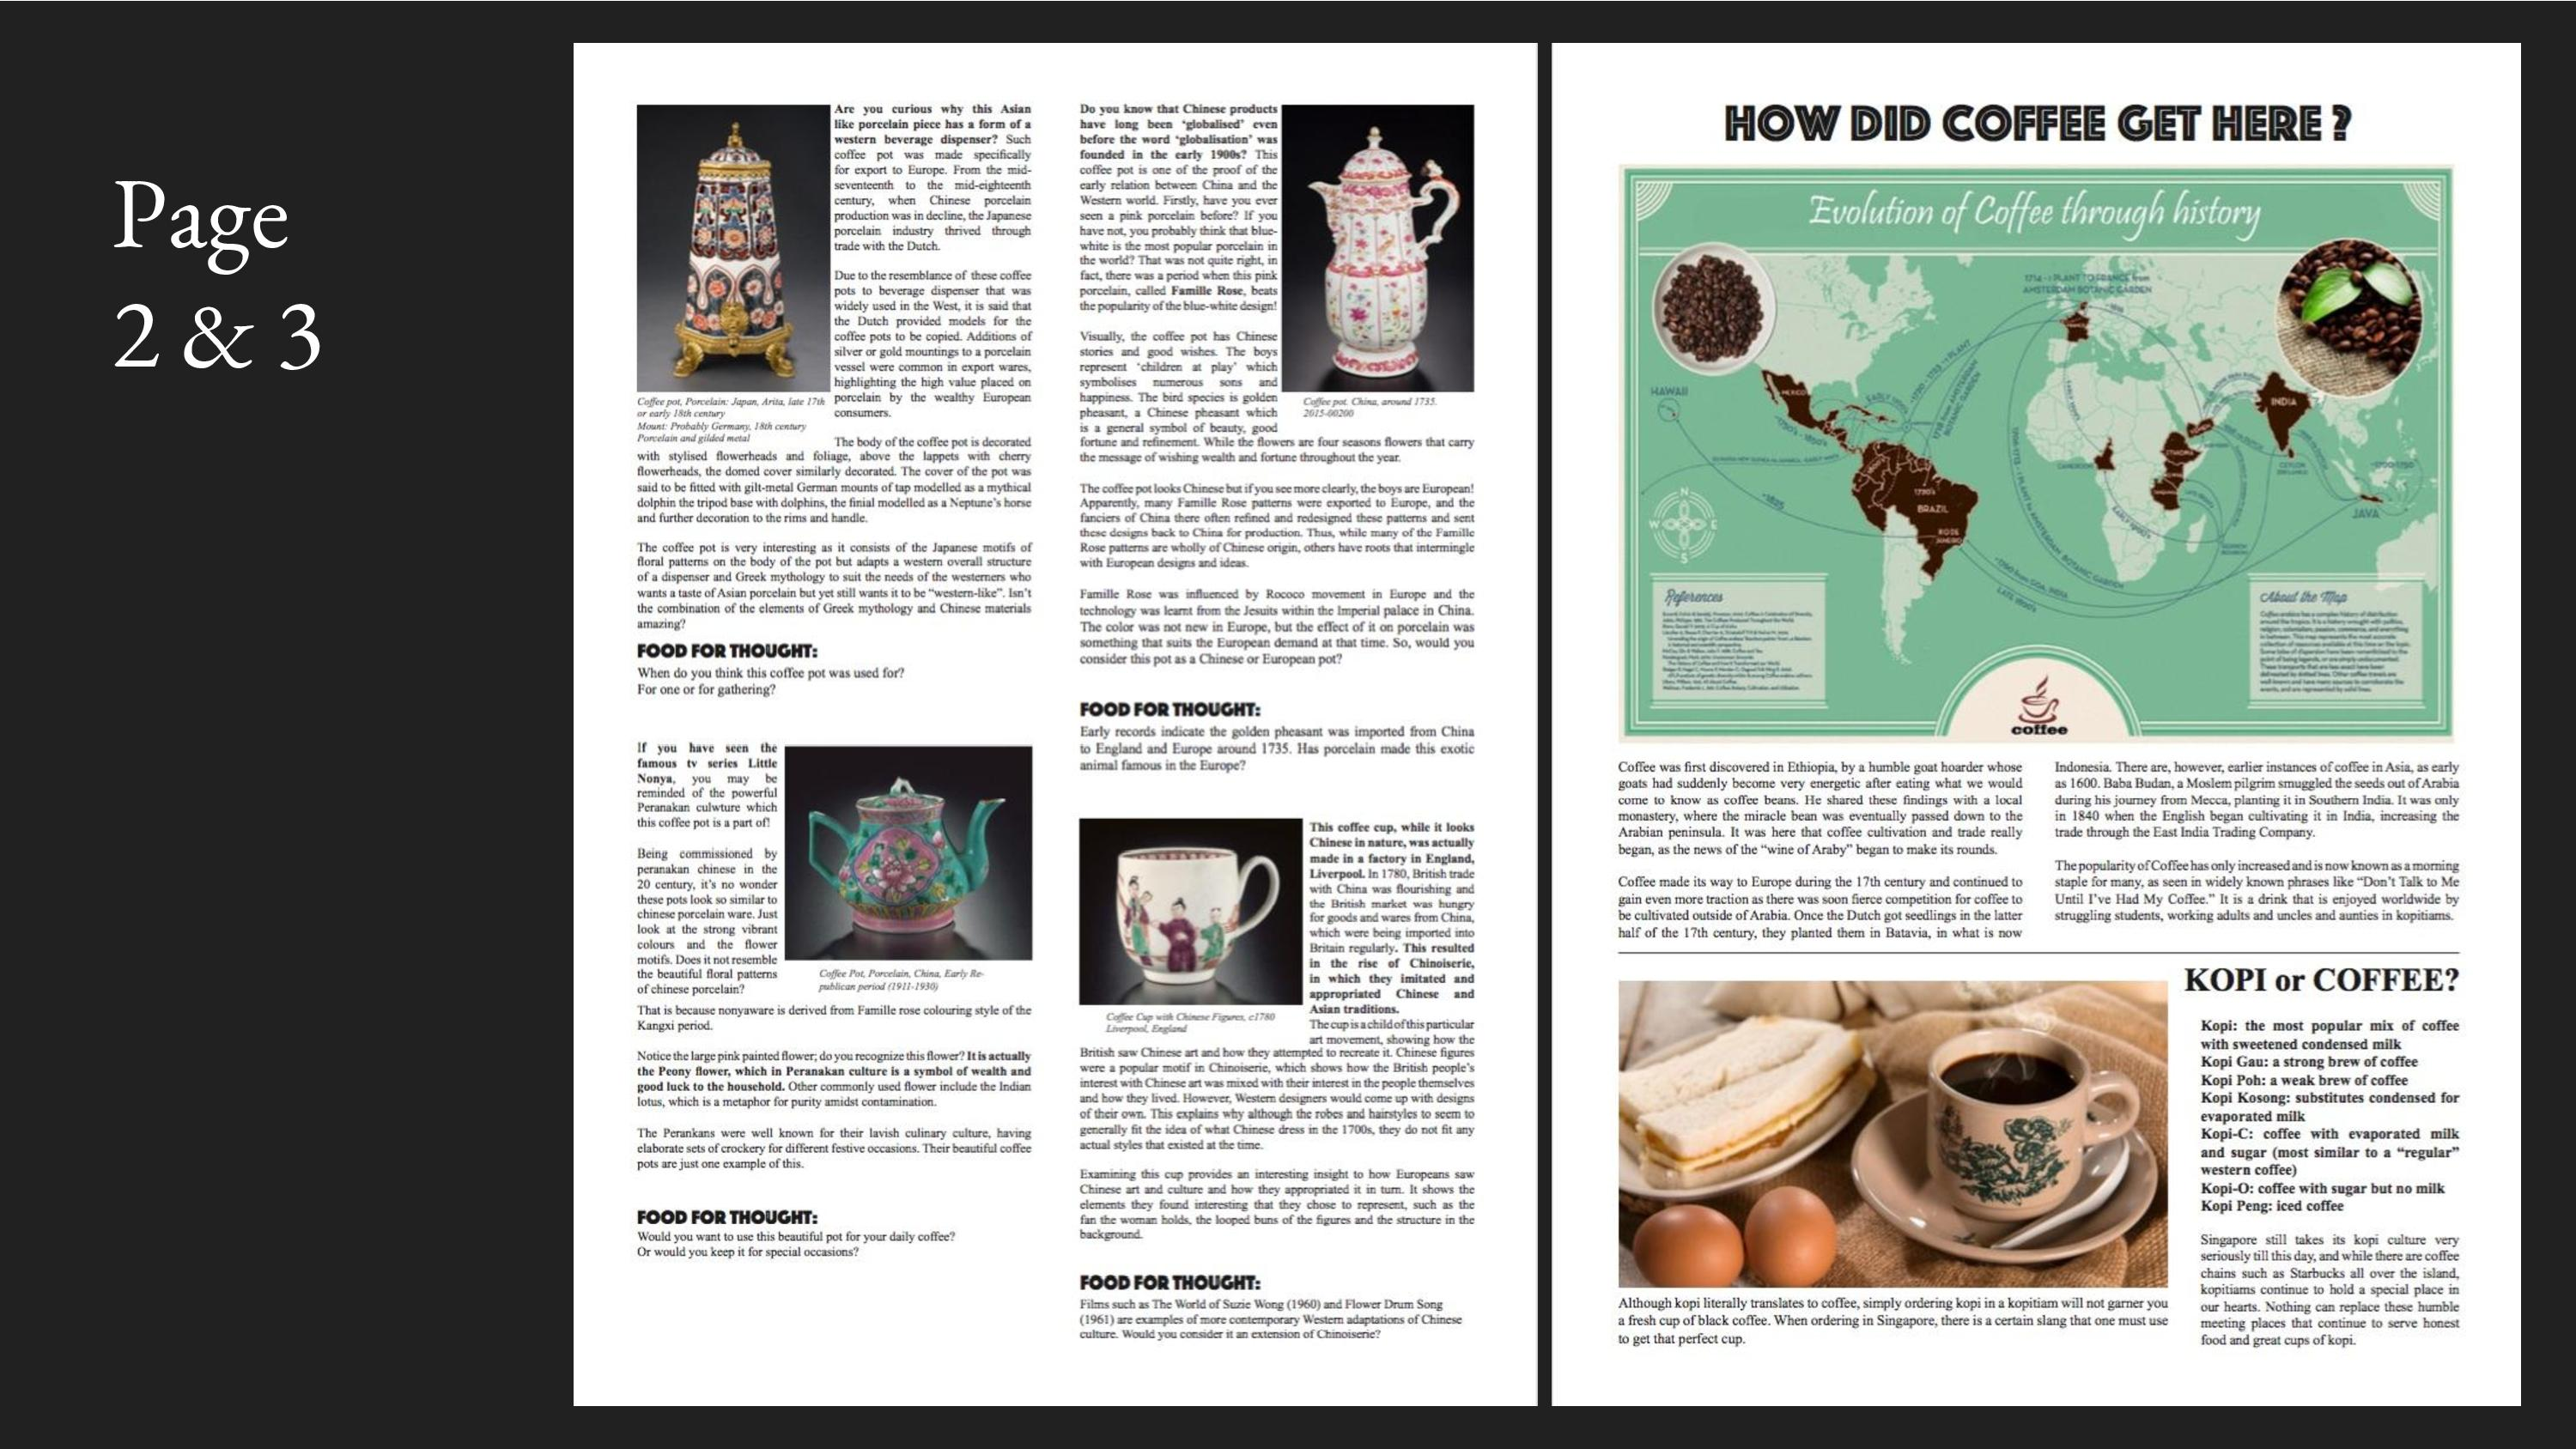 d652d8f0 Here is the pdf of our creative project progress presentation so far. PDF  version: Kopi_ The Evolution of Coffeeware